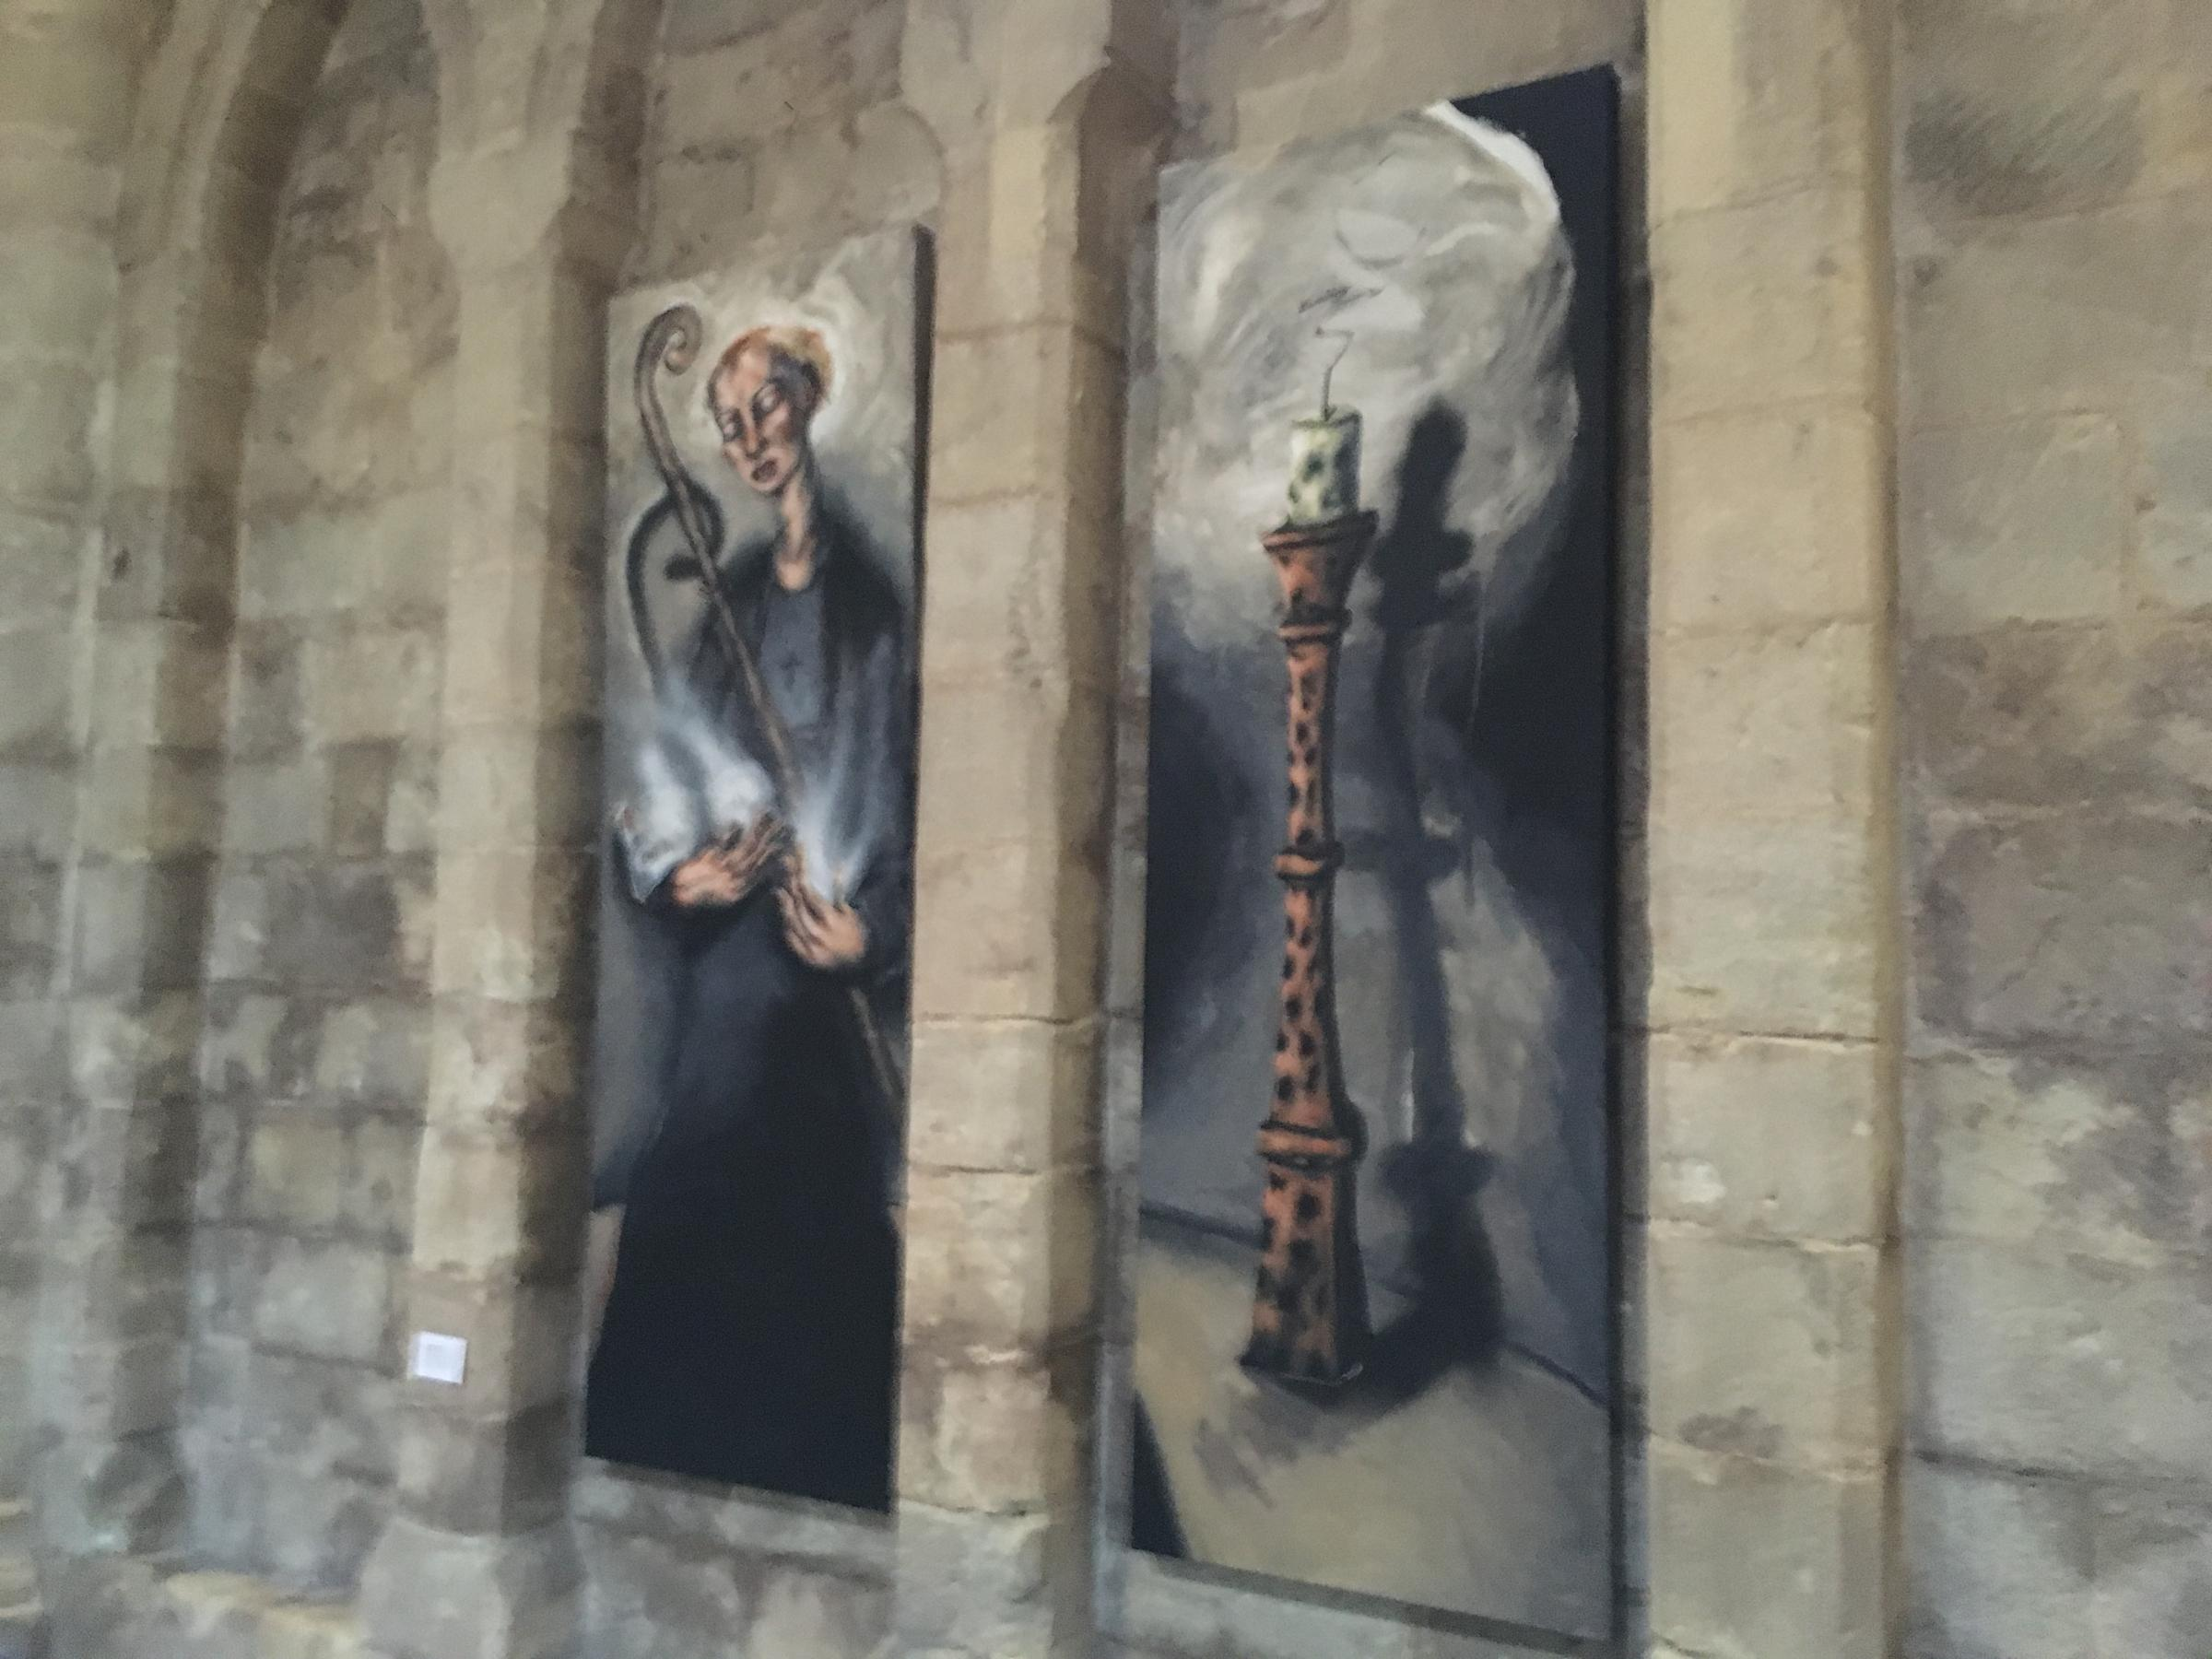 The painting of St Ethelflaeda in Romsey Abbey has been complained about by 15 members